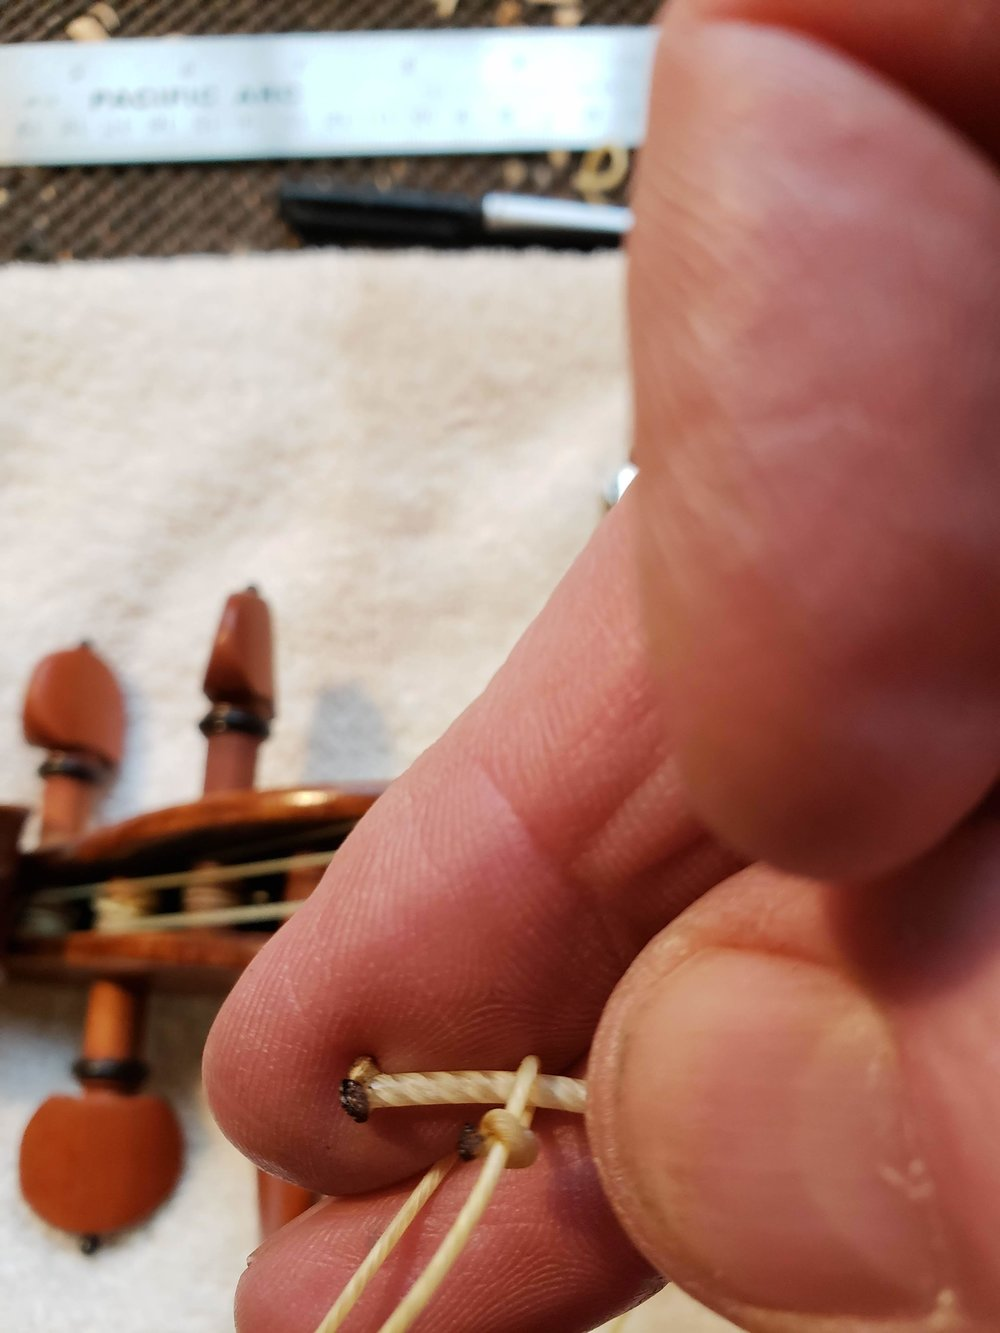 Step 11 - You now have a slip-knot that you can put over the end of the playing string.